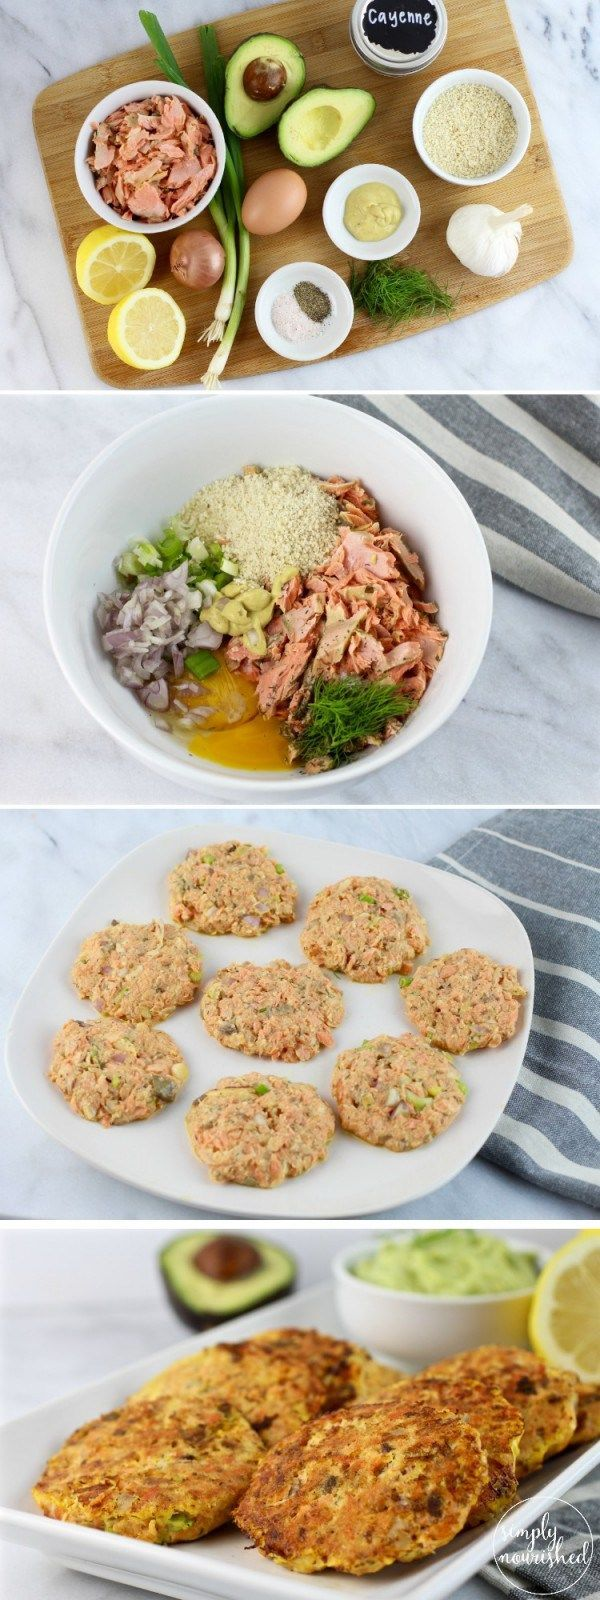 Serve these burgers on a bed of greens with healthy salad toppings and drizzled with olive oil, freshly squeezed lemon juice and a dollop of mashed avocado or Avocado Garlic Sauce. This recipe can be made with fresh salmon or canned salmon. | Whole30 | Paleo | Gluten-free | Dairy-free | http://simplynourishedrecipes.com/salmon-burgers/